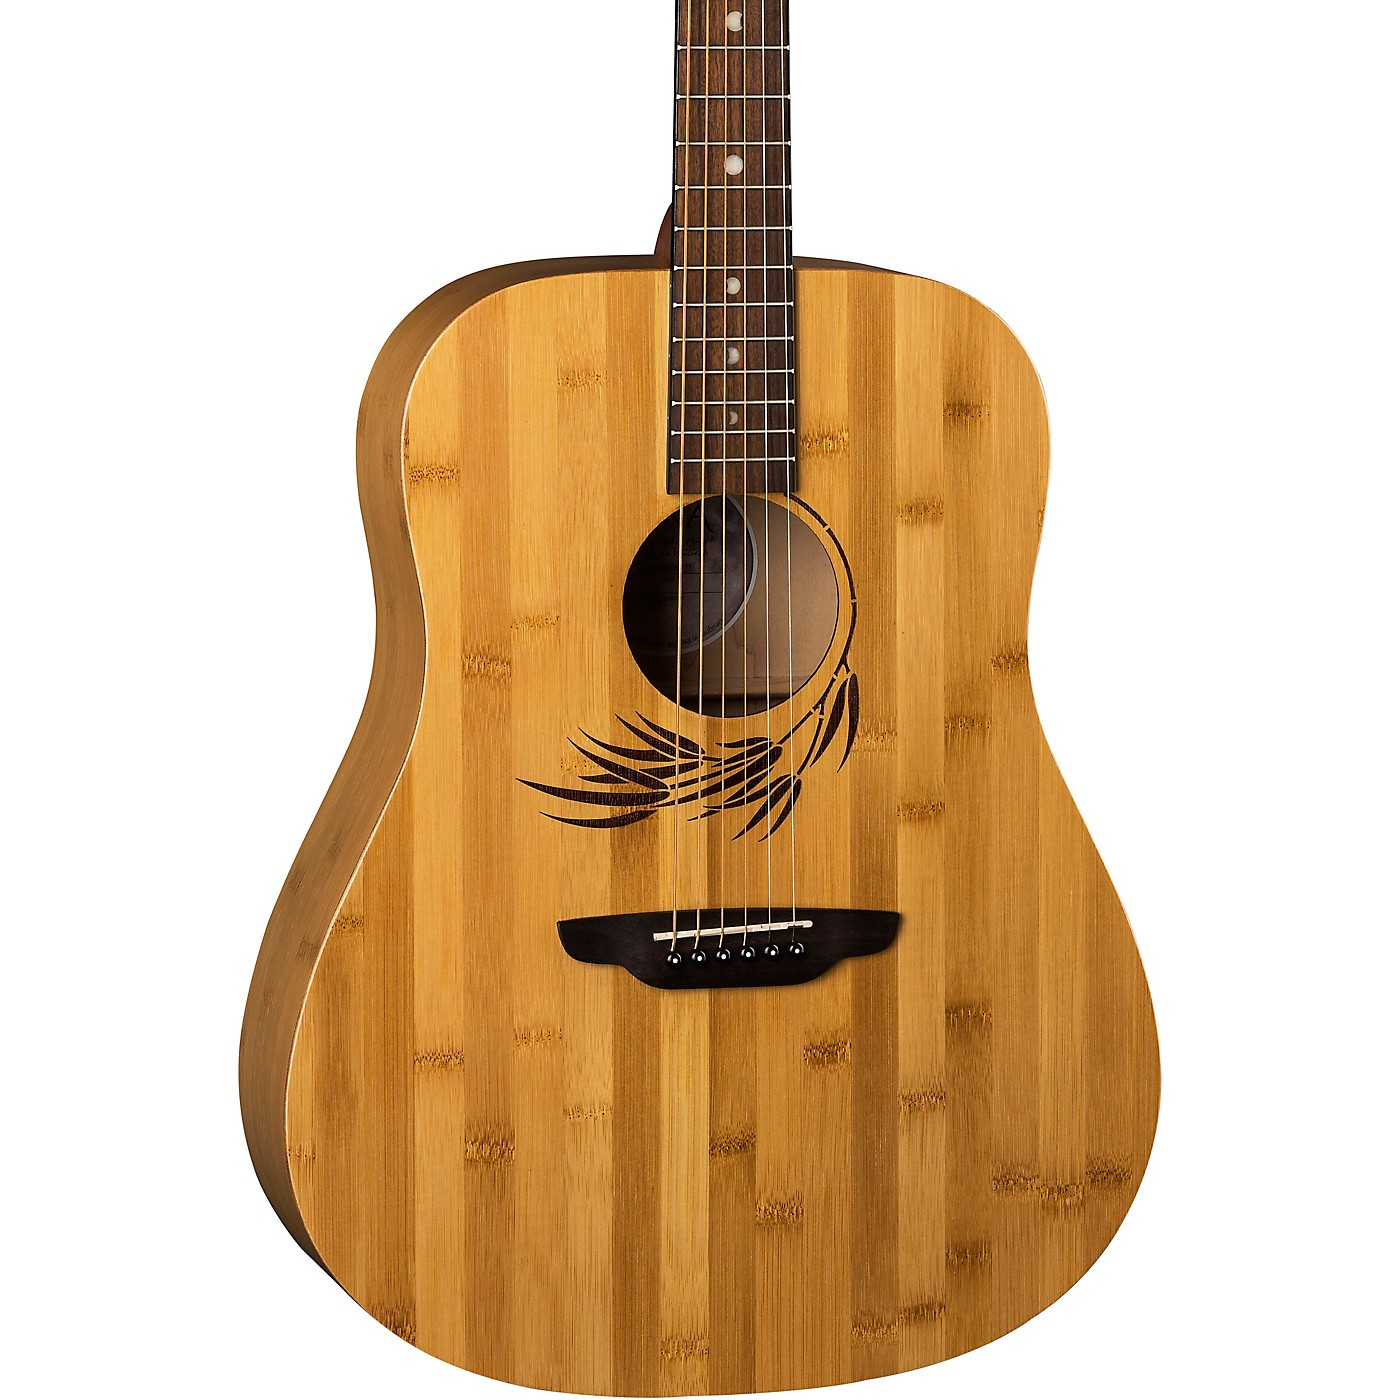 Luna Guitars Woodland Bamboo Dreadnought Acoustic Guitar thumbnail